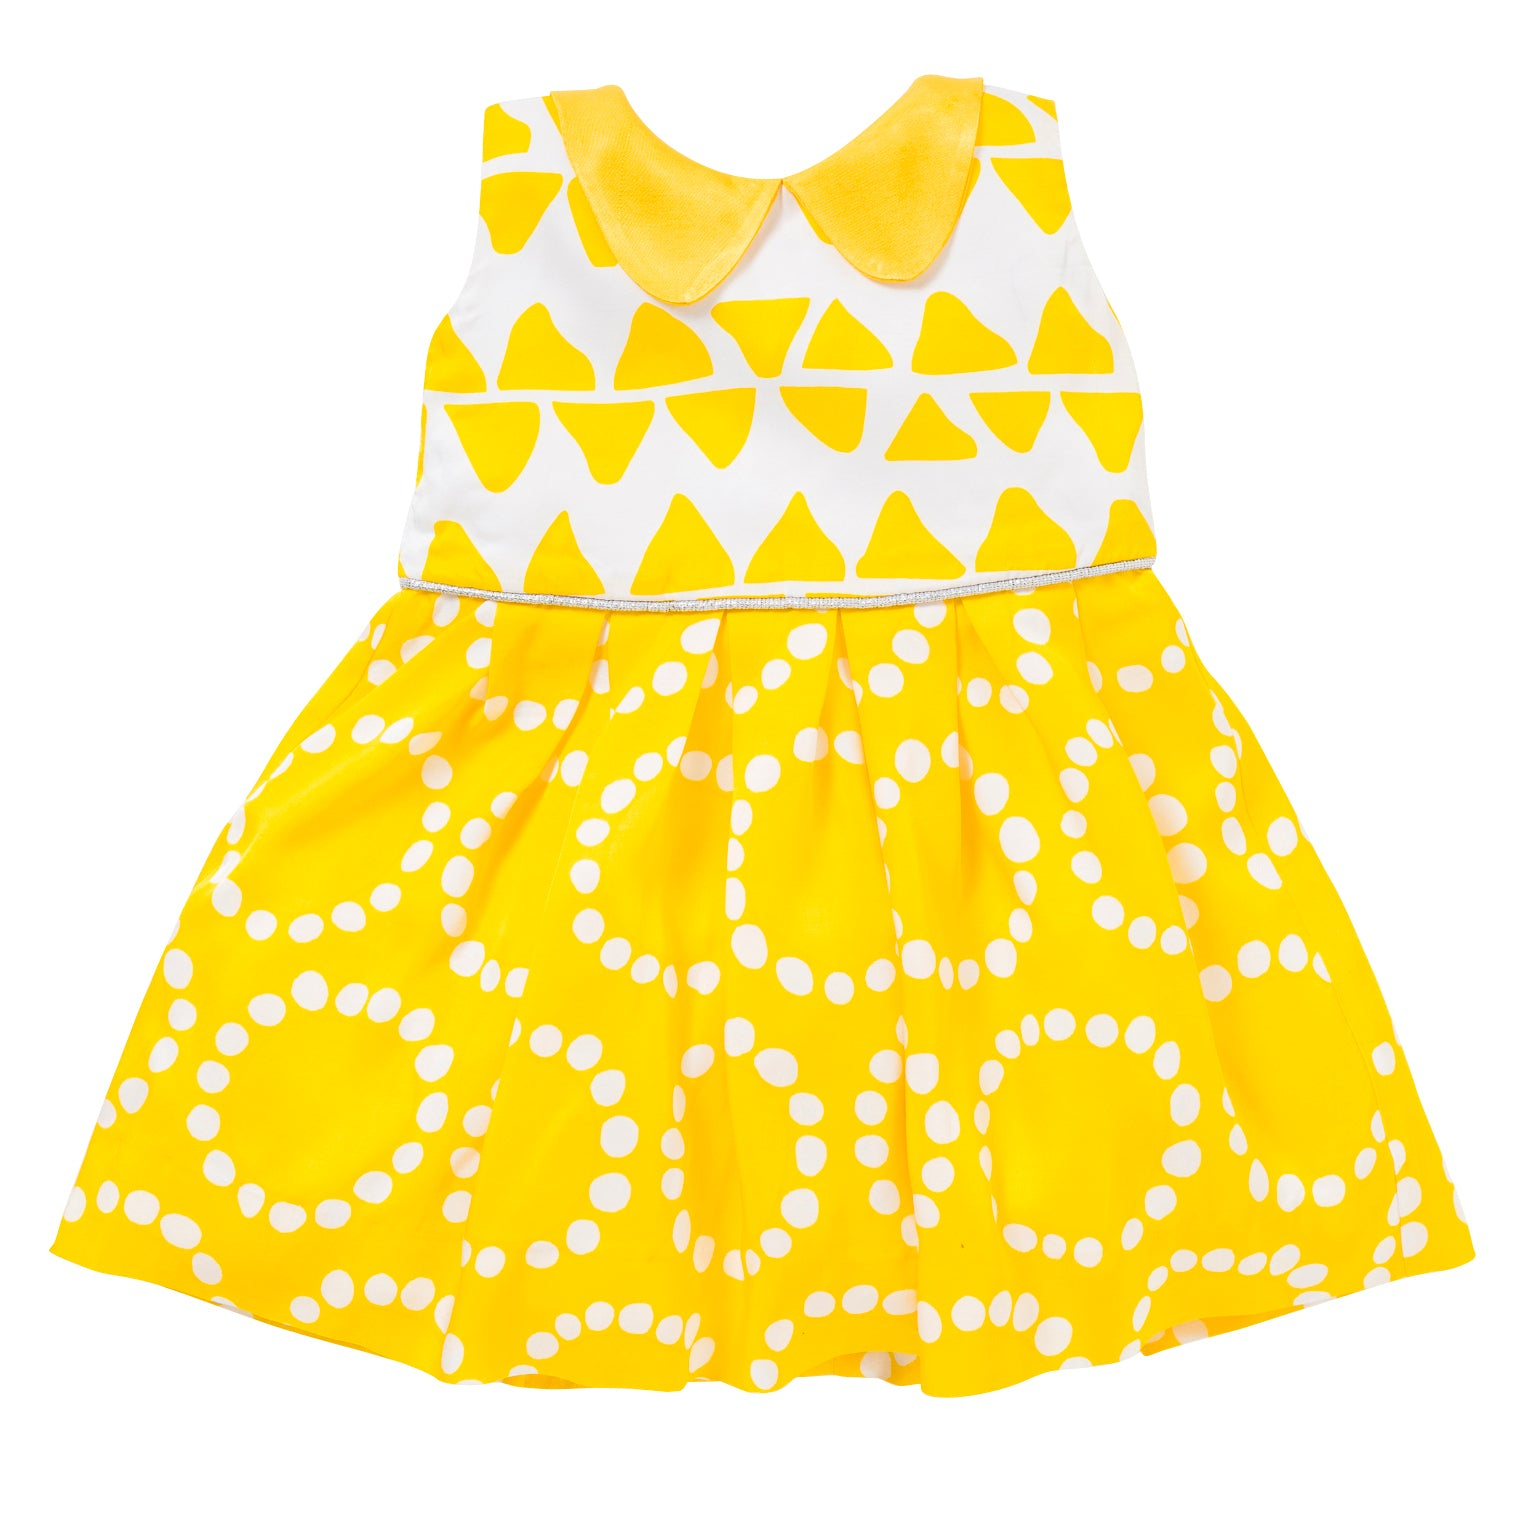 The Peter Pan Dress in Yellow